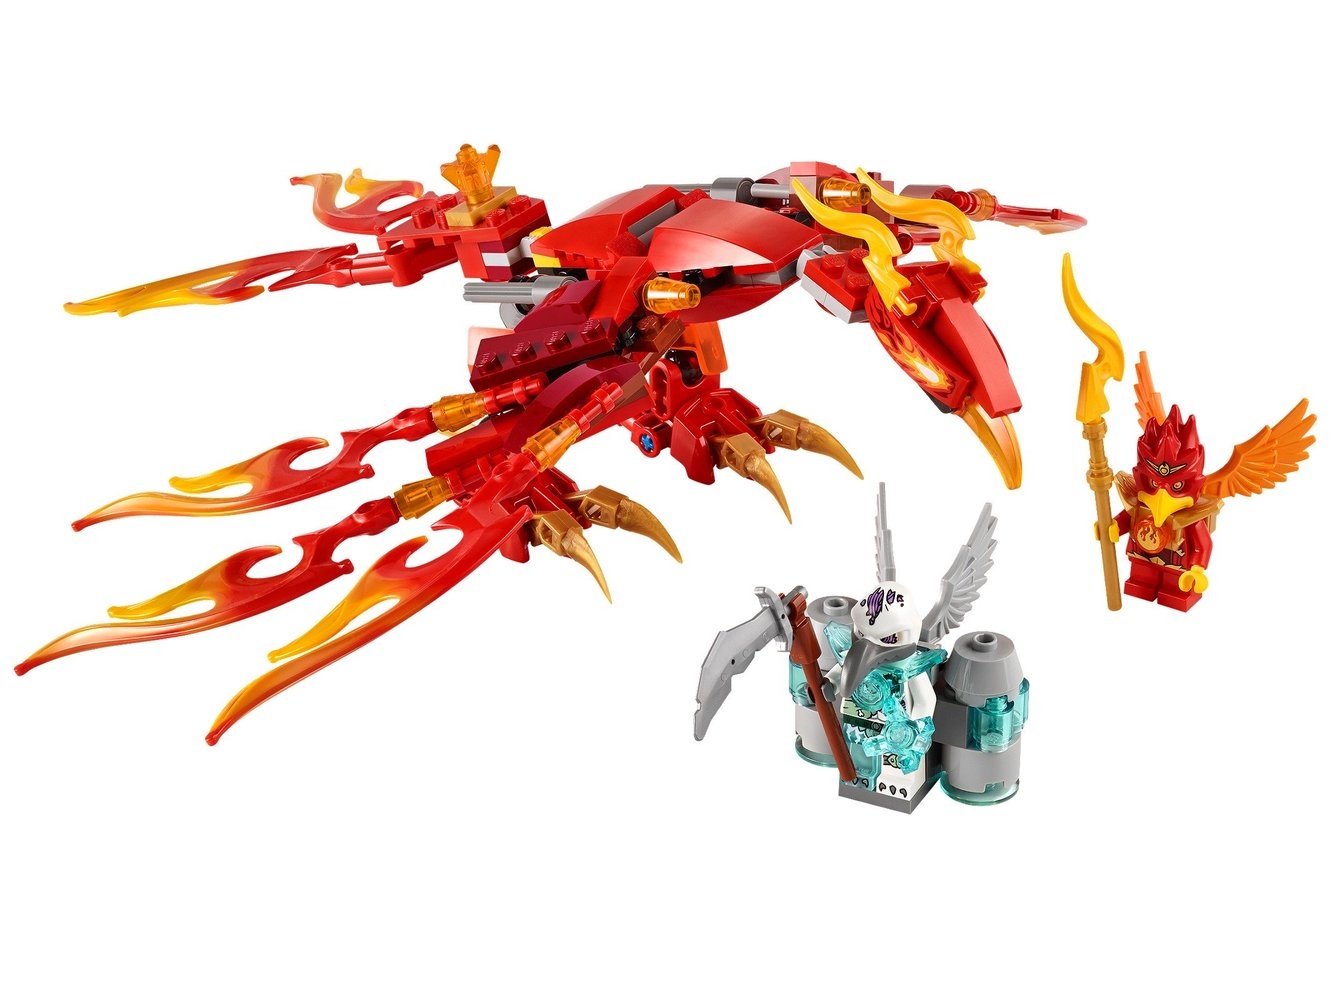 Flinx's Ultimate Phoenix